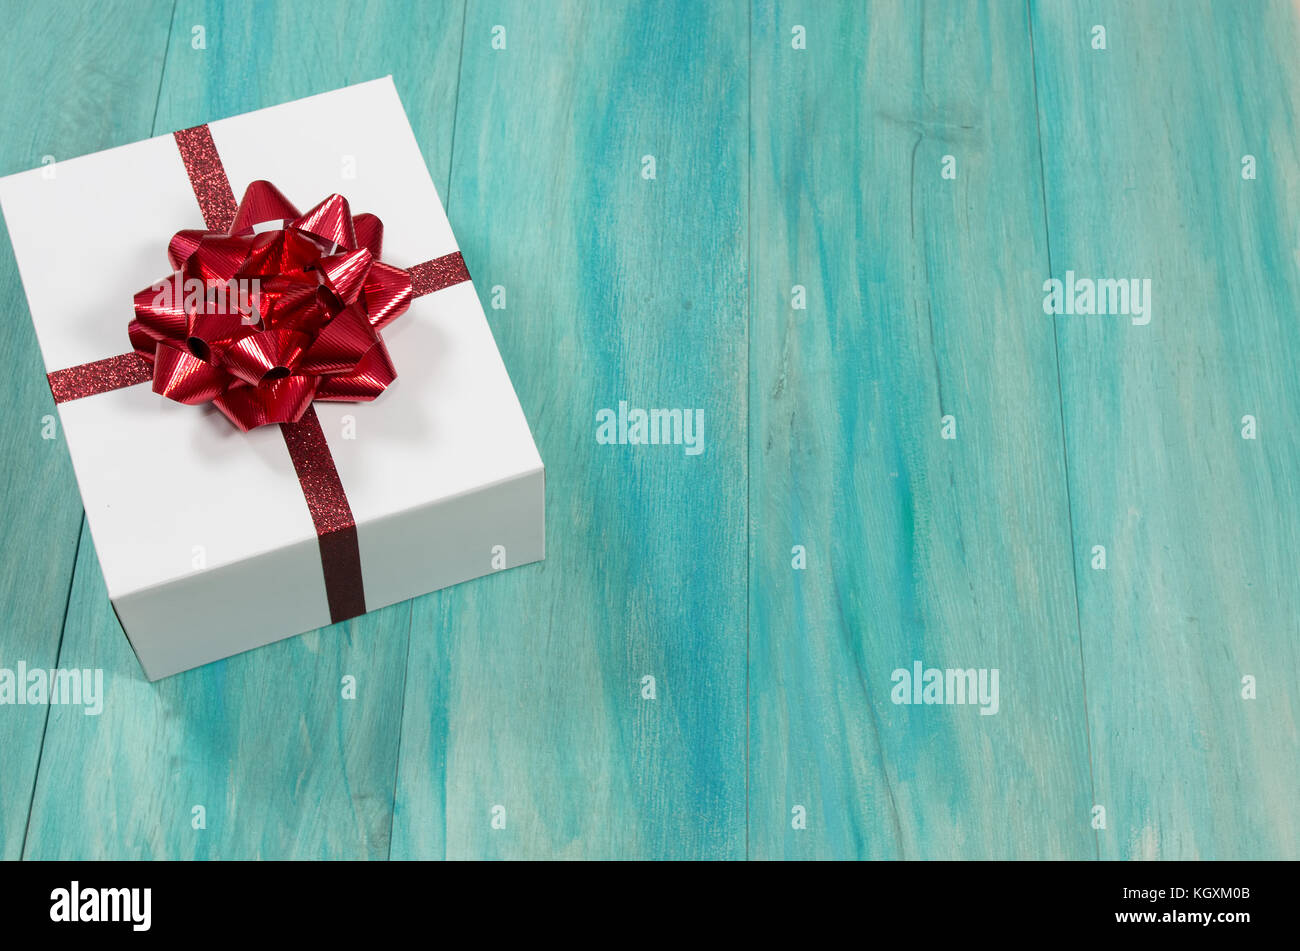 Single Christmas present with red bow on a distressed teal wood background Stock Photo